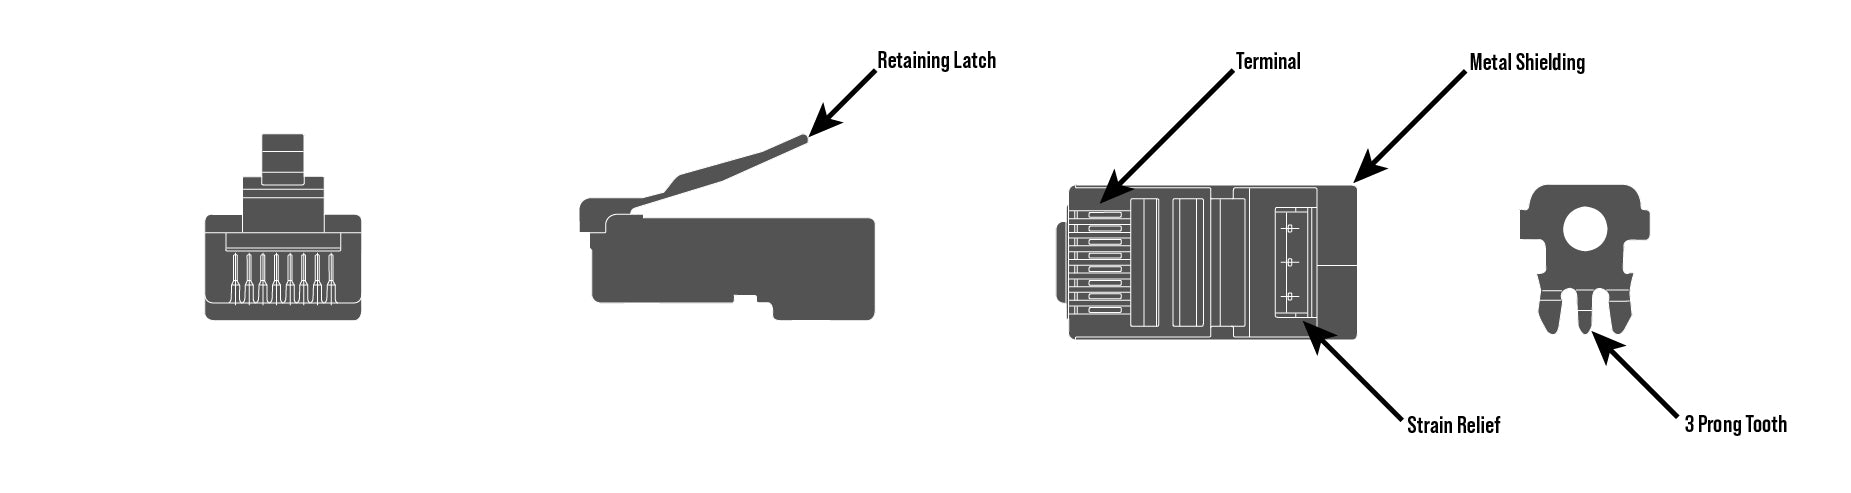 Parts of a RJ45 connector